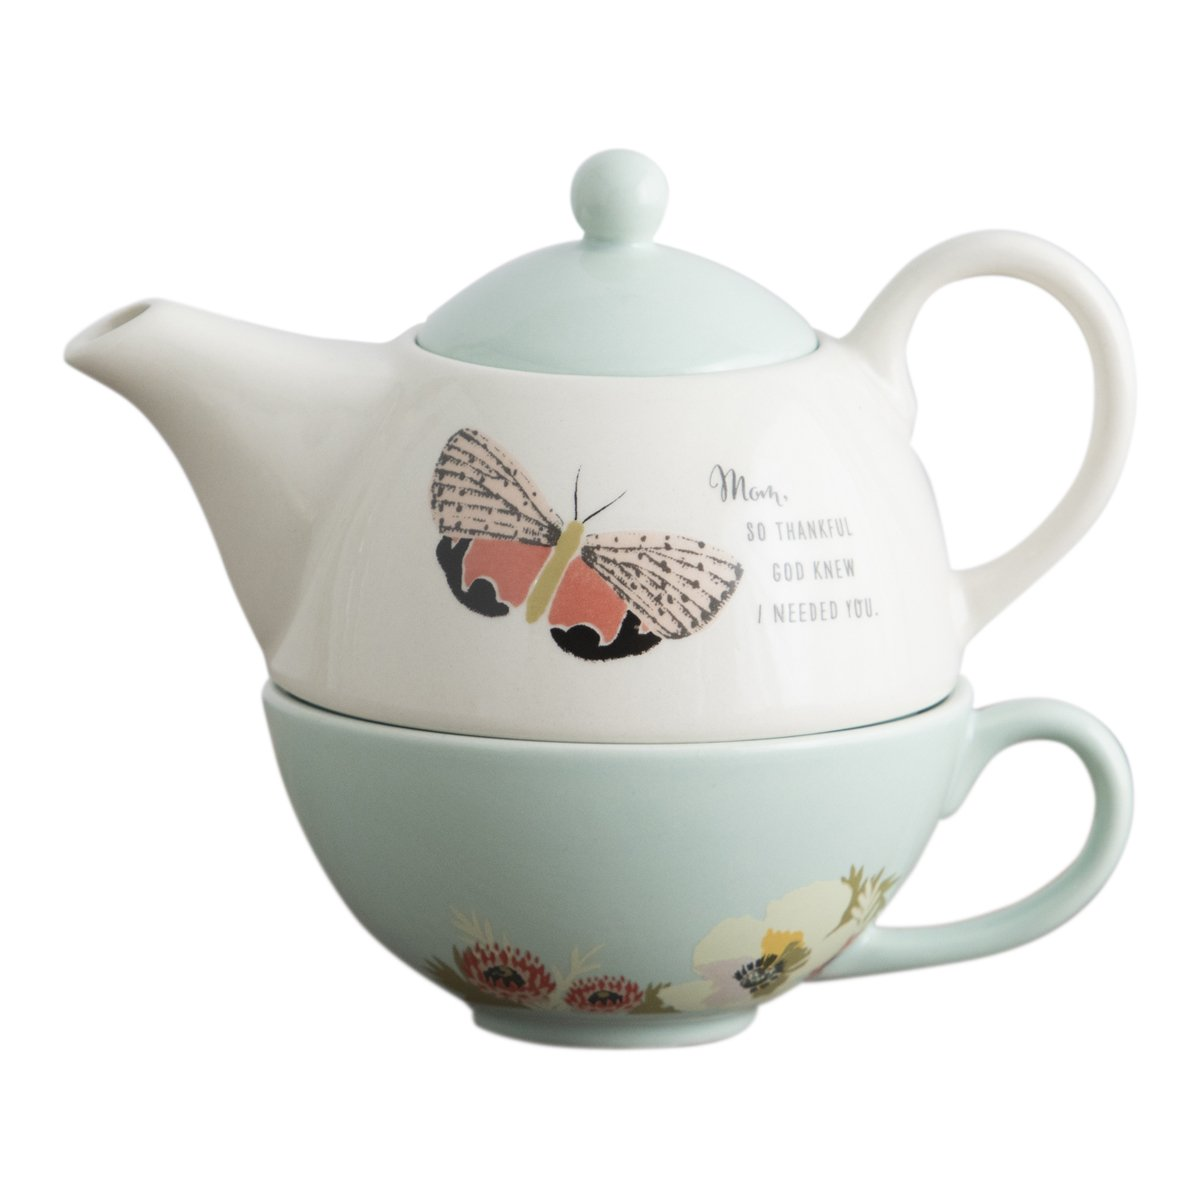 Teapot With Cup Cheap 10 Cup Teapot Find 10 Cup Teapot Deals On Line At Alibaba